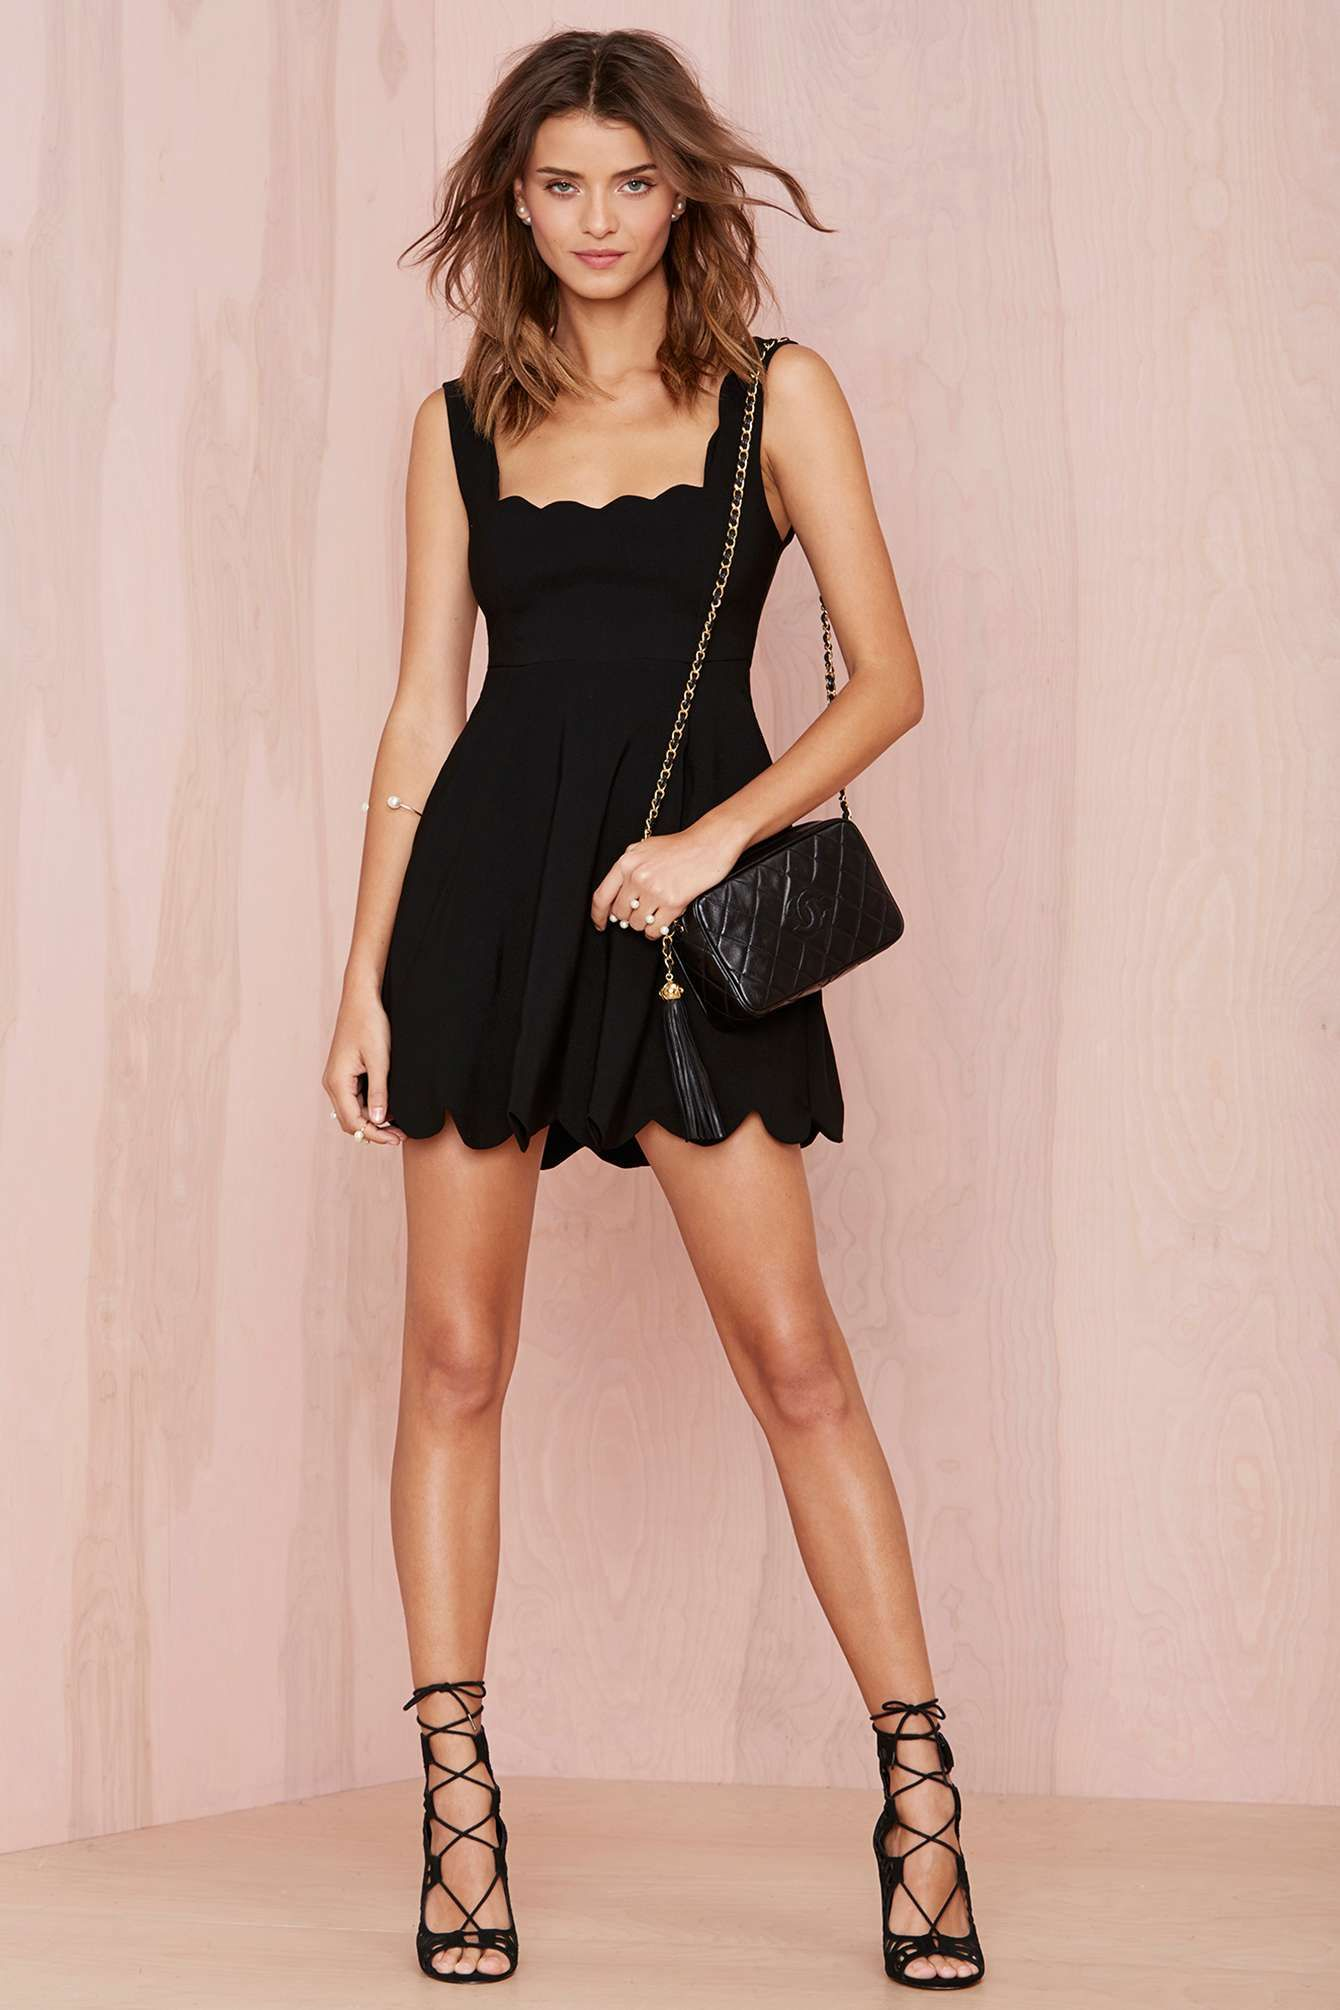 Black dress in summer - Nasty Gal I M Yours Dress Black Shop Dresses At Nasty Gal